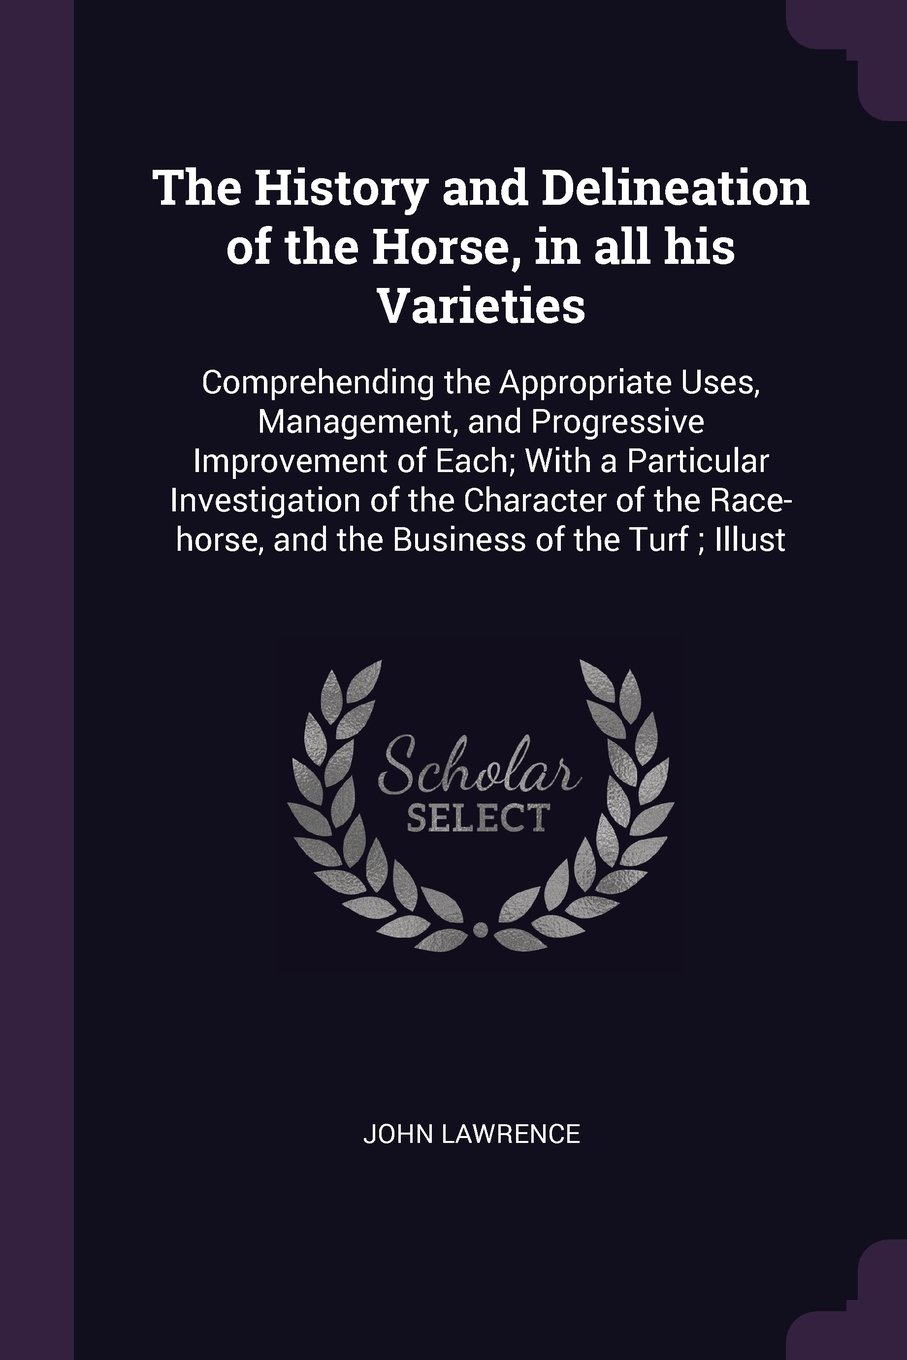 Download The History and Delineation of the Horse, in all his Varieties: Comprehending the Appropriate Uses, Management, and Progressive Improvement of Each; ... and the Business of the Turf ; Illust pdf epub